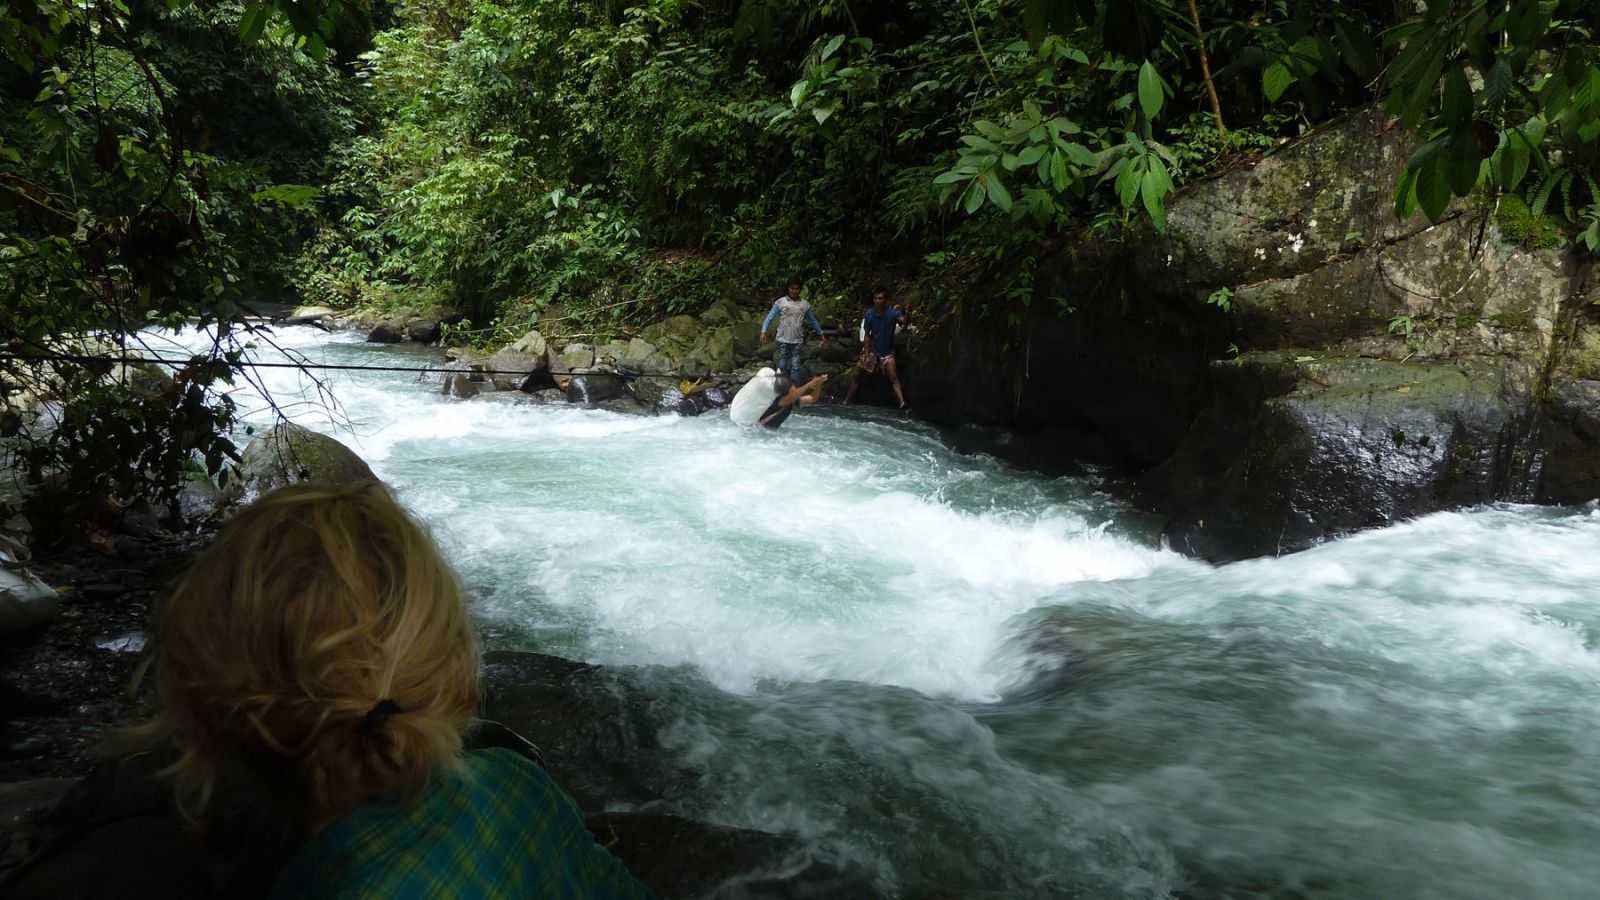 a photo of a porter in gunung leuser national park crossing a river on a rope.